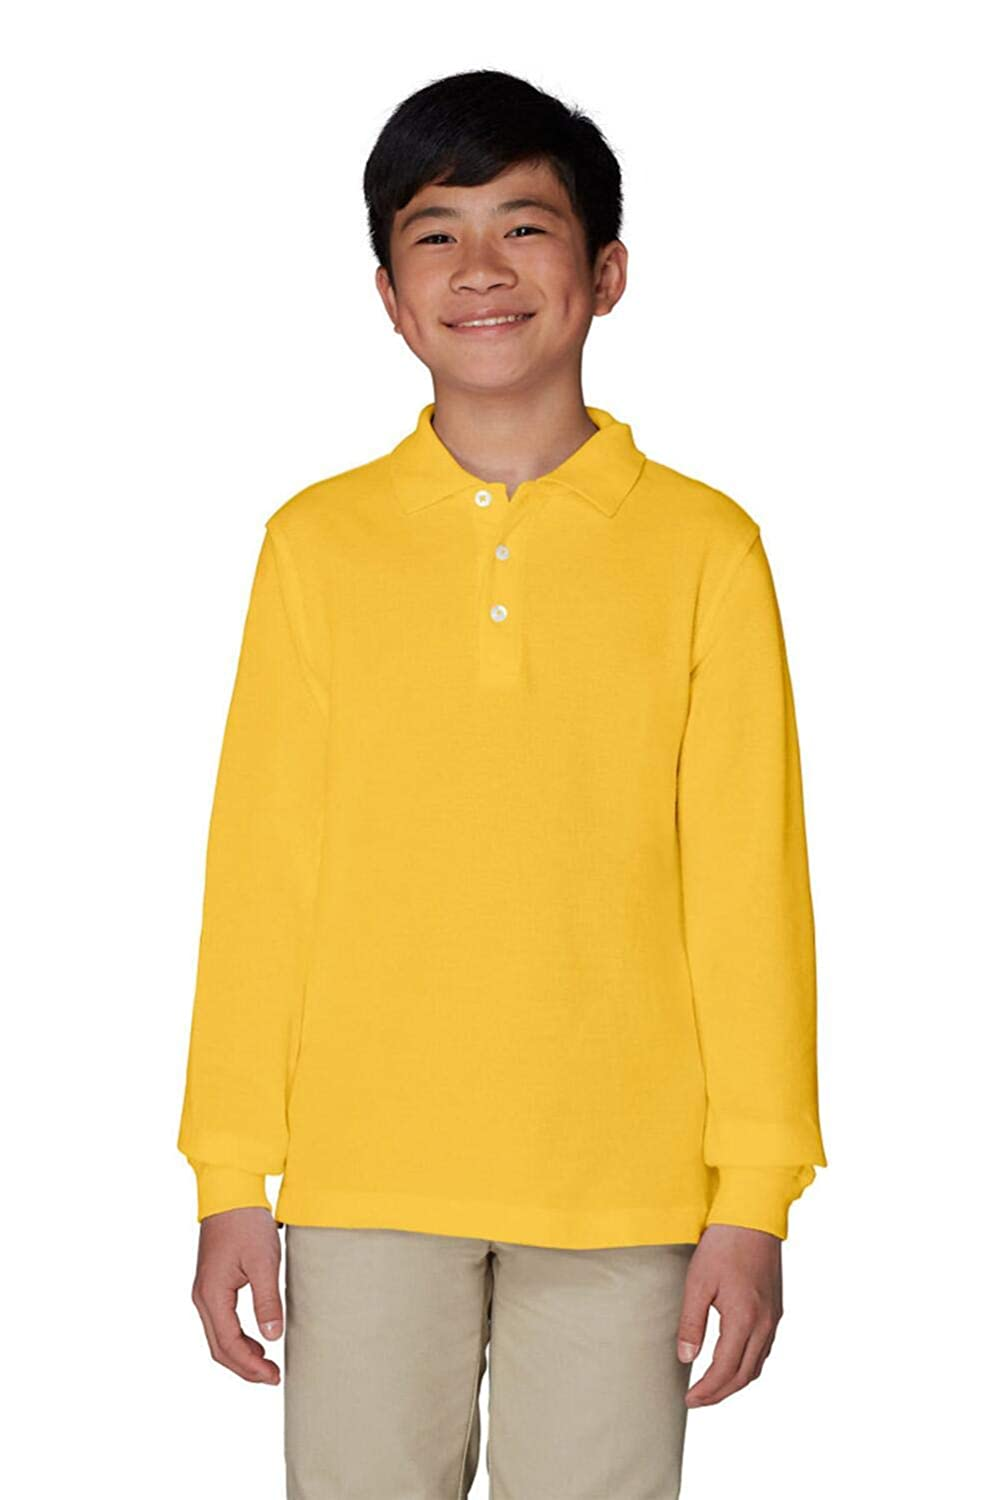 French Toast Young Men's Long Sleeve Polo SA9085Y